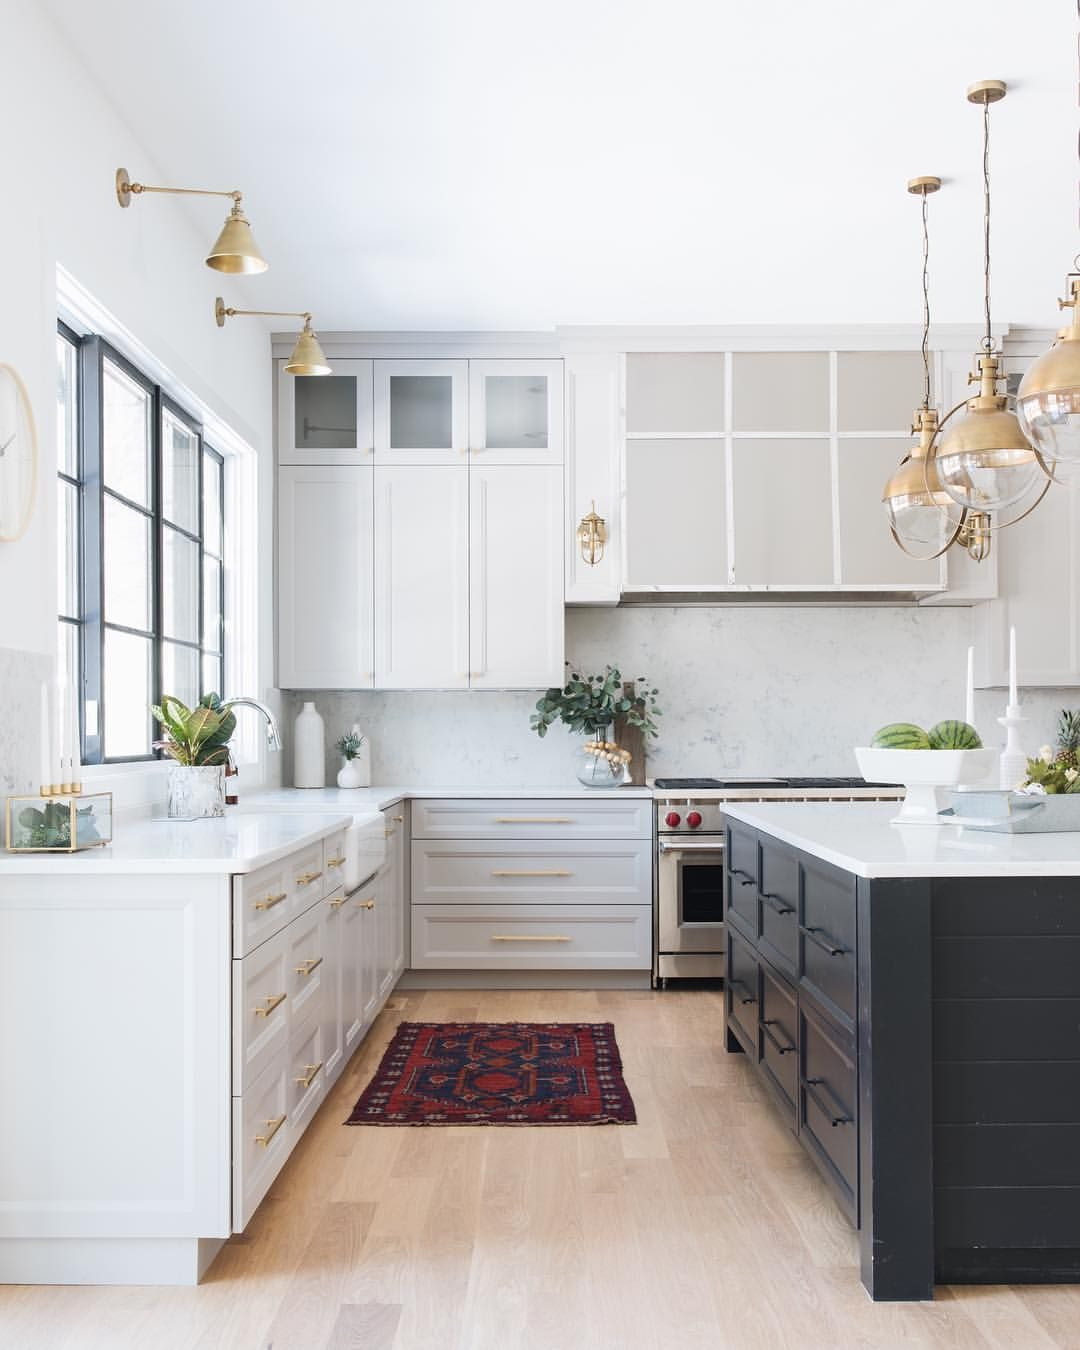 375 Likes 12 Comments Stoffer Photography Interiors Stofferphotographyinteriors On I Modern Kitchen Interiors Light Grey Kitchens Interior Design Kitchen